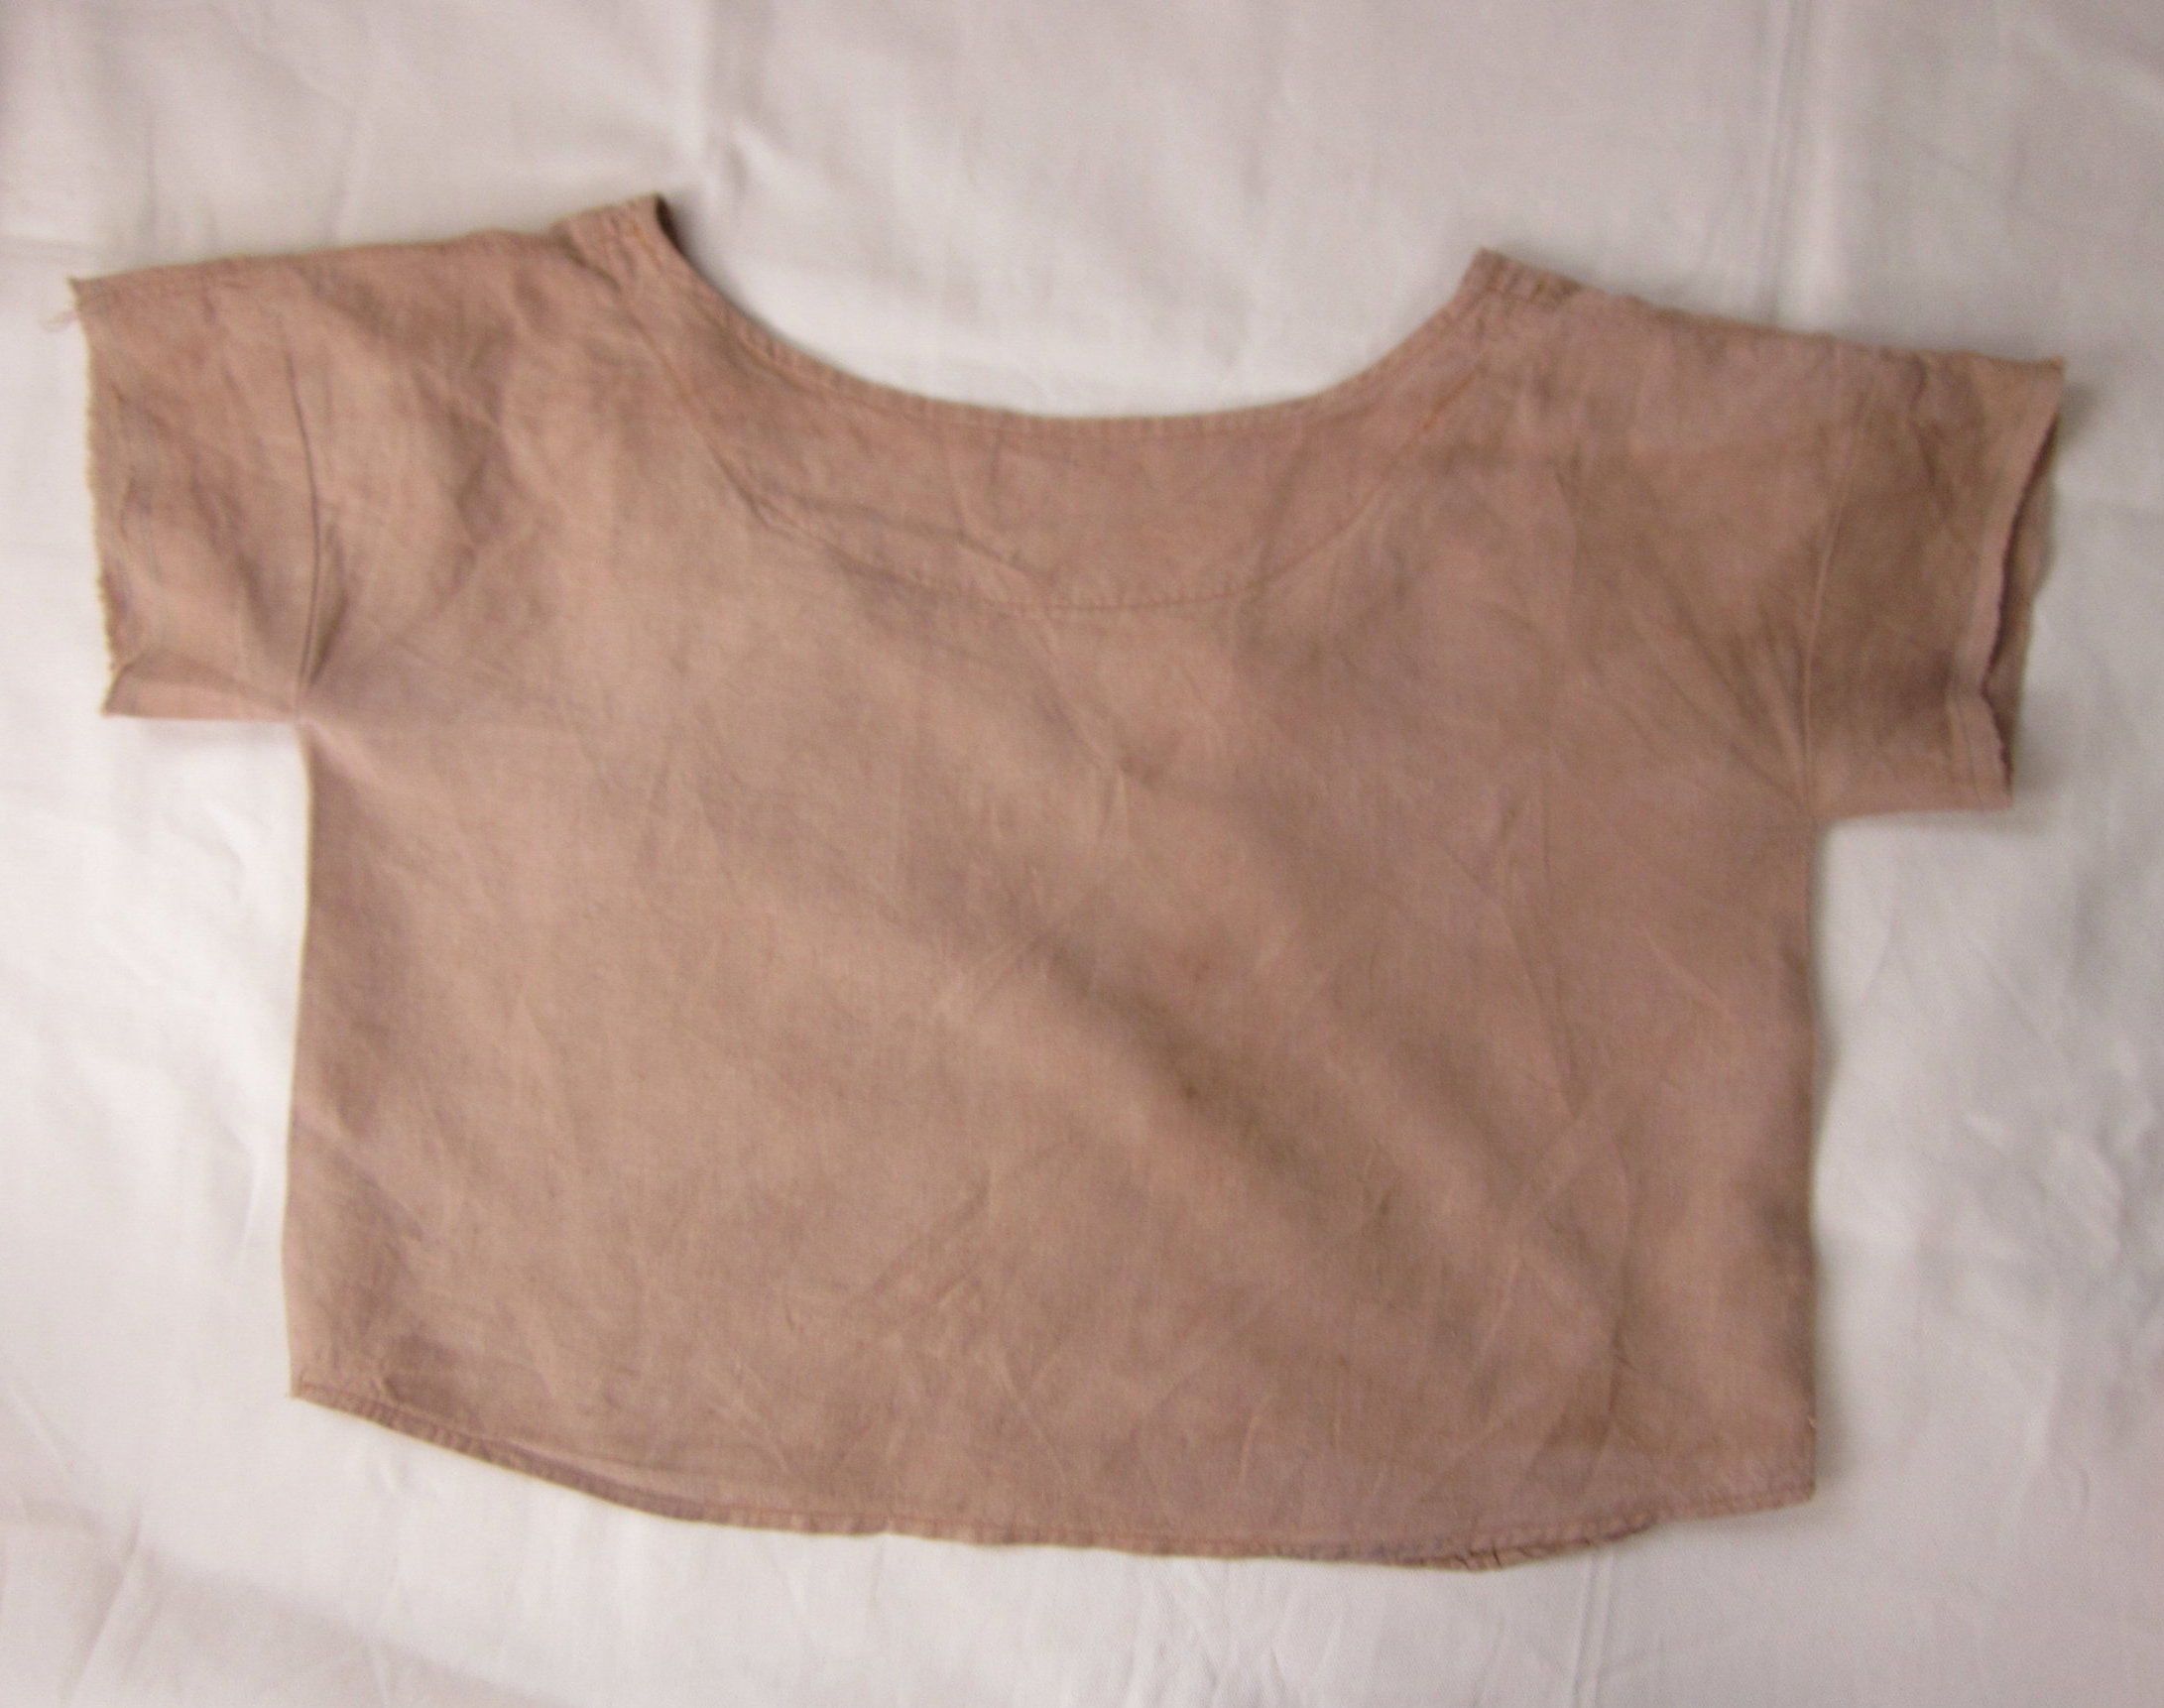 Linen Crop Top Dyed with Avocado Skins